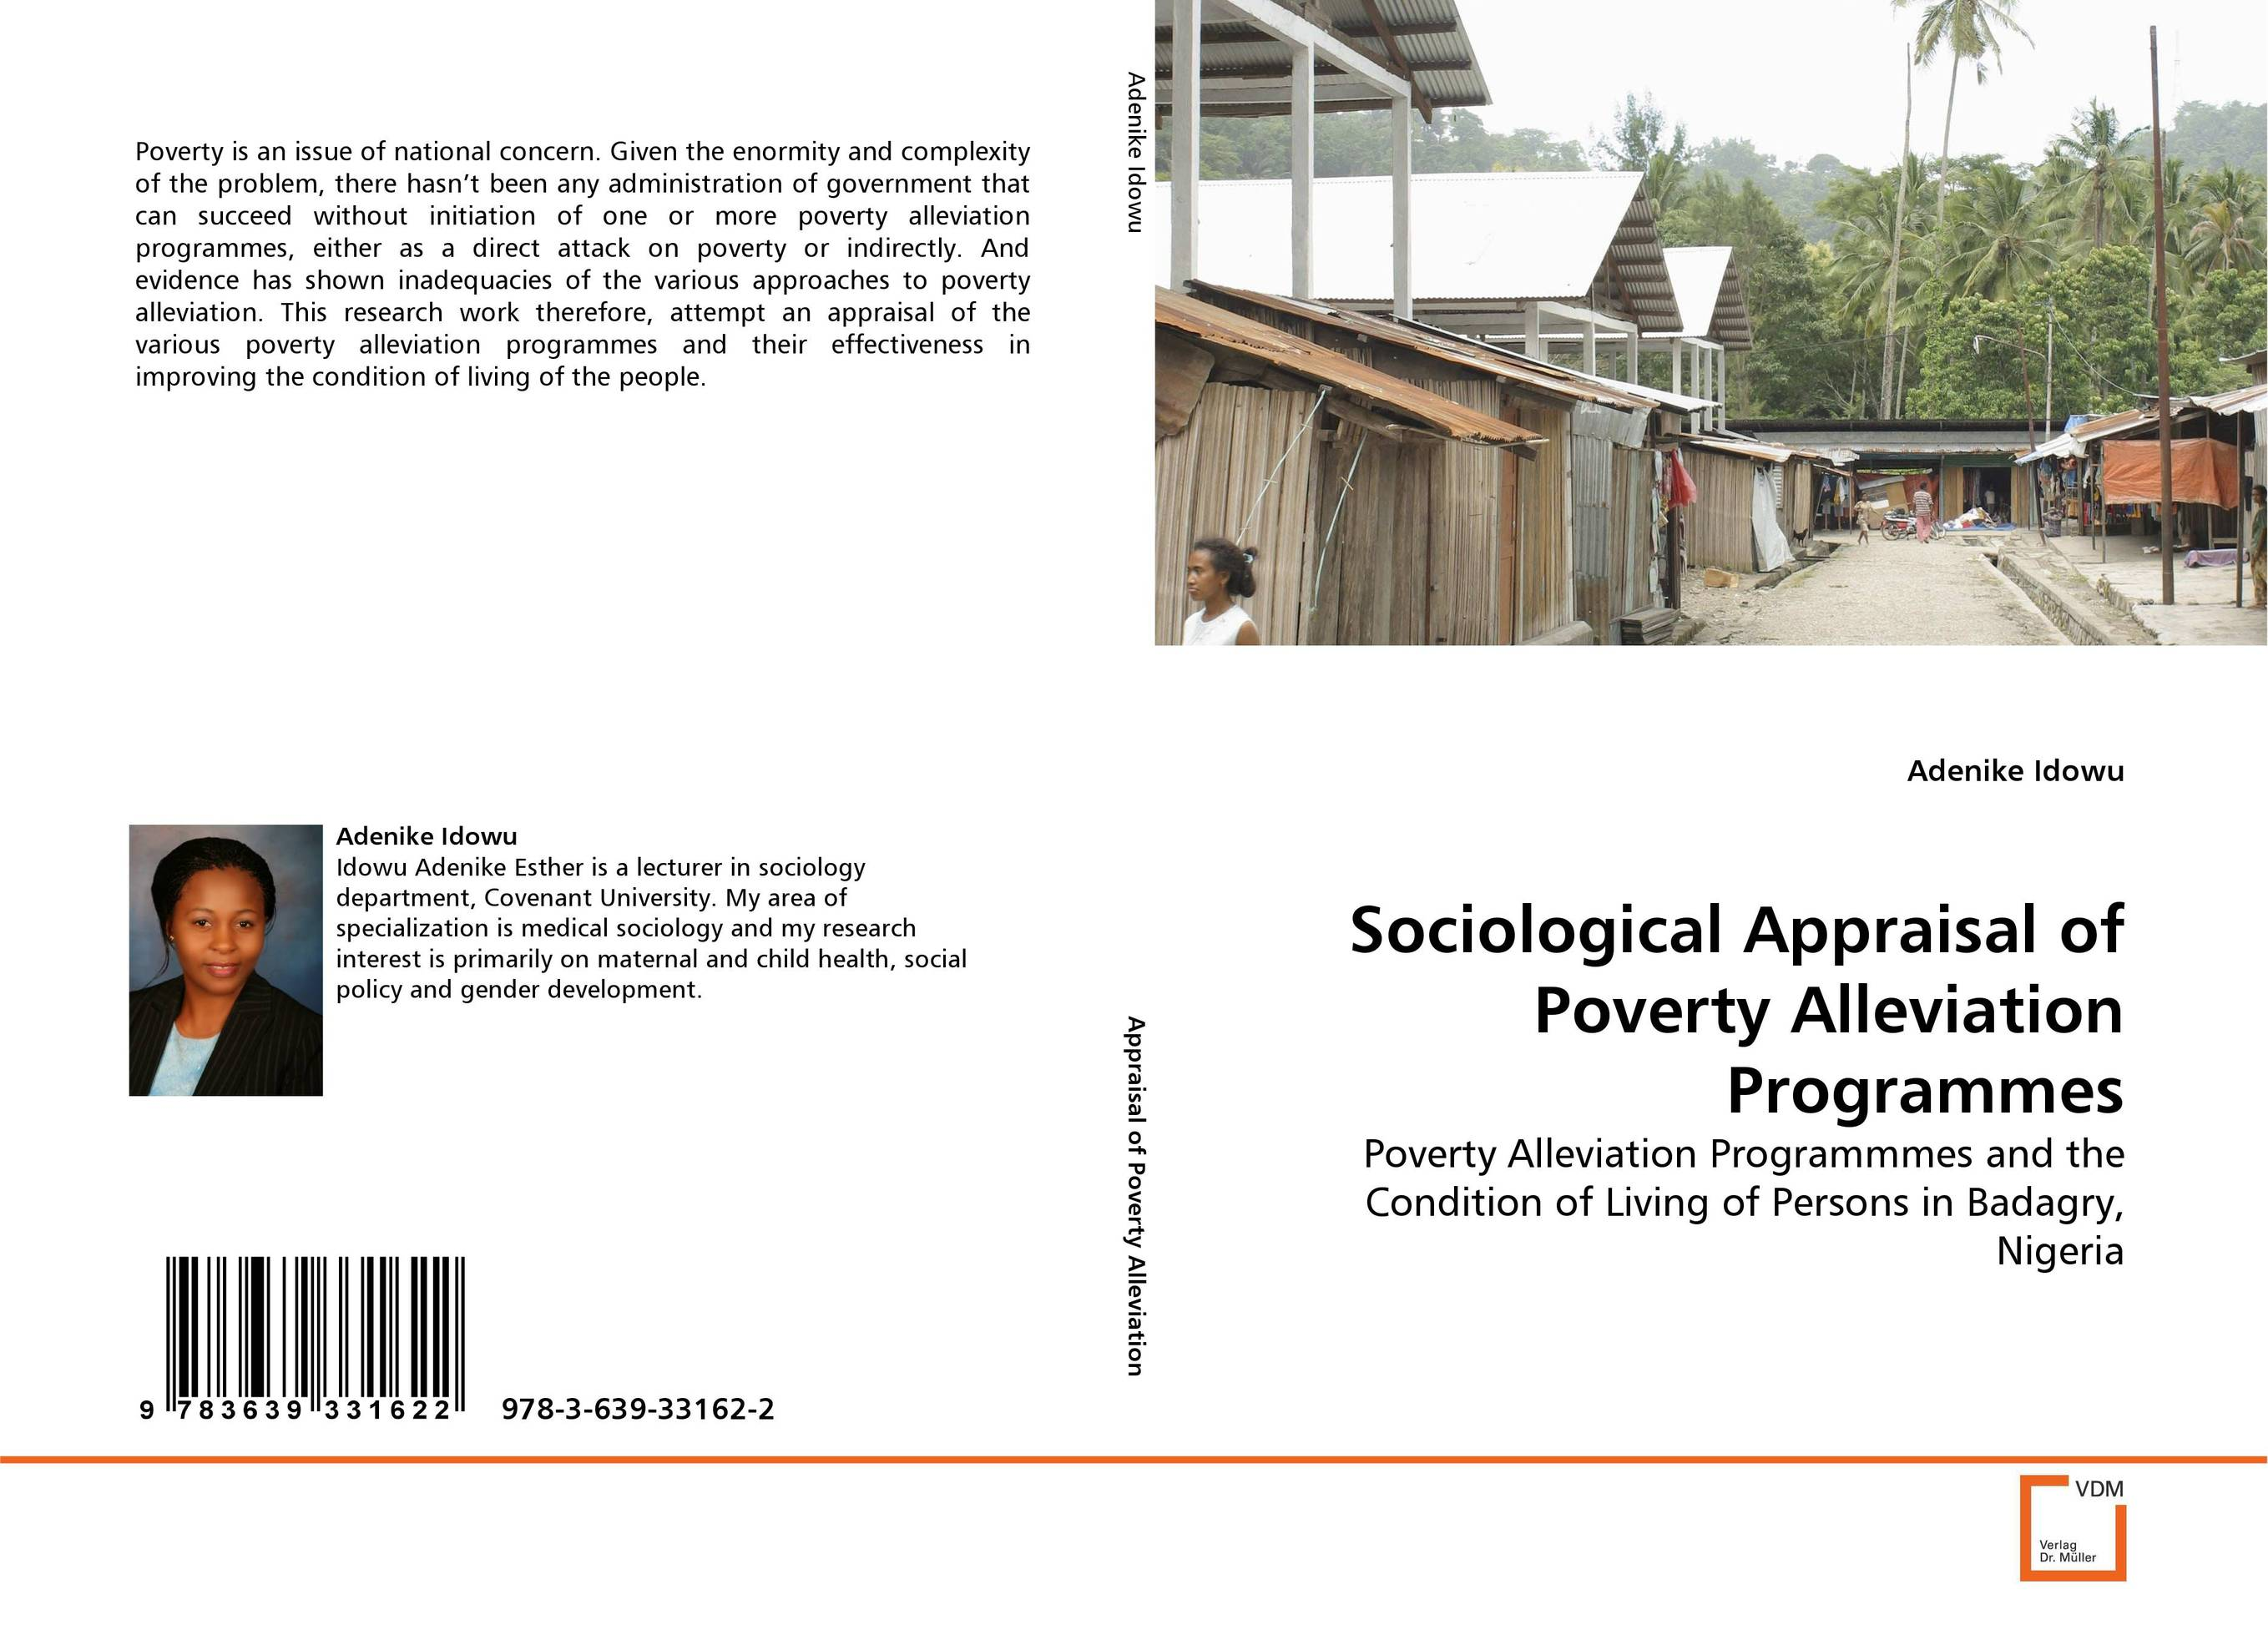 Sociological Appraisal of Poverty Alleviation Programmes role of ict in rural poverty alleviation